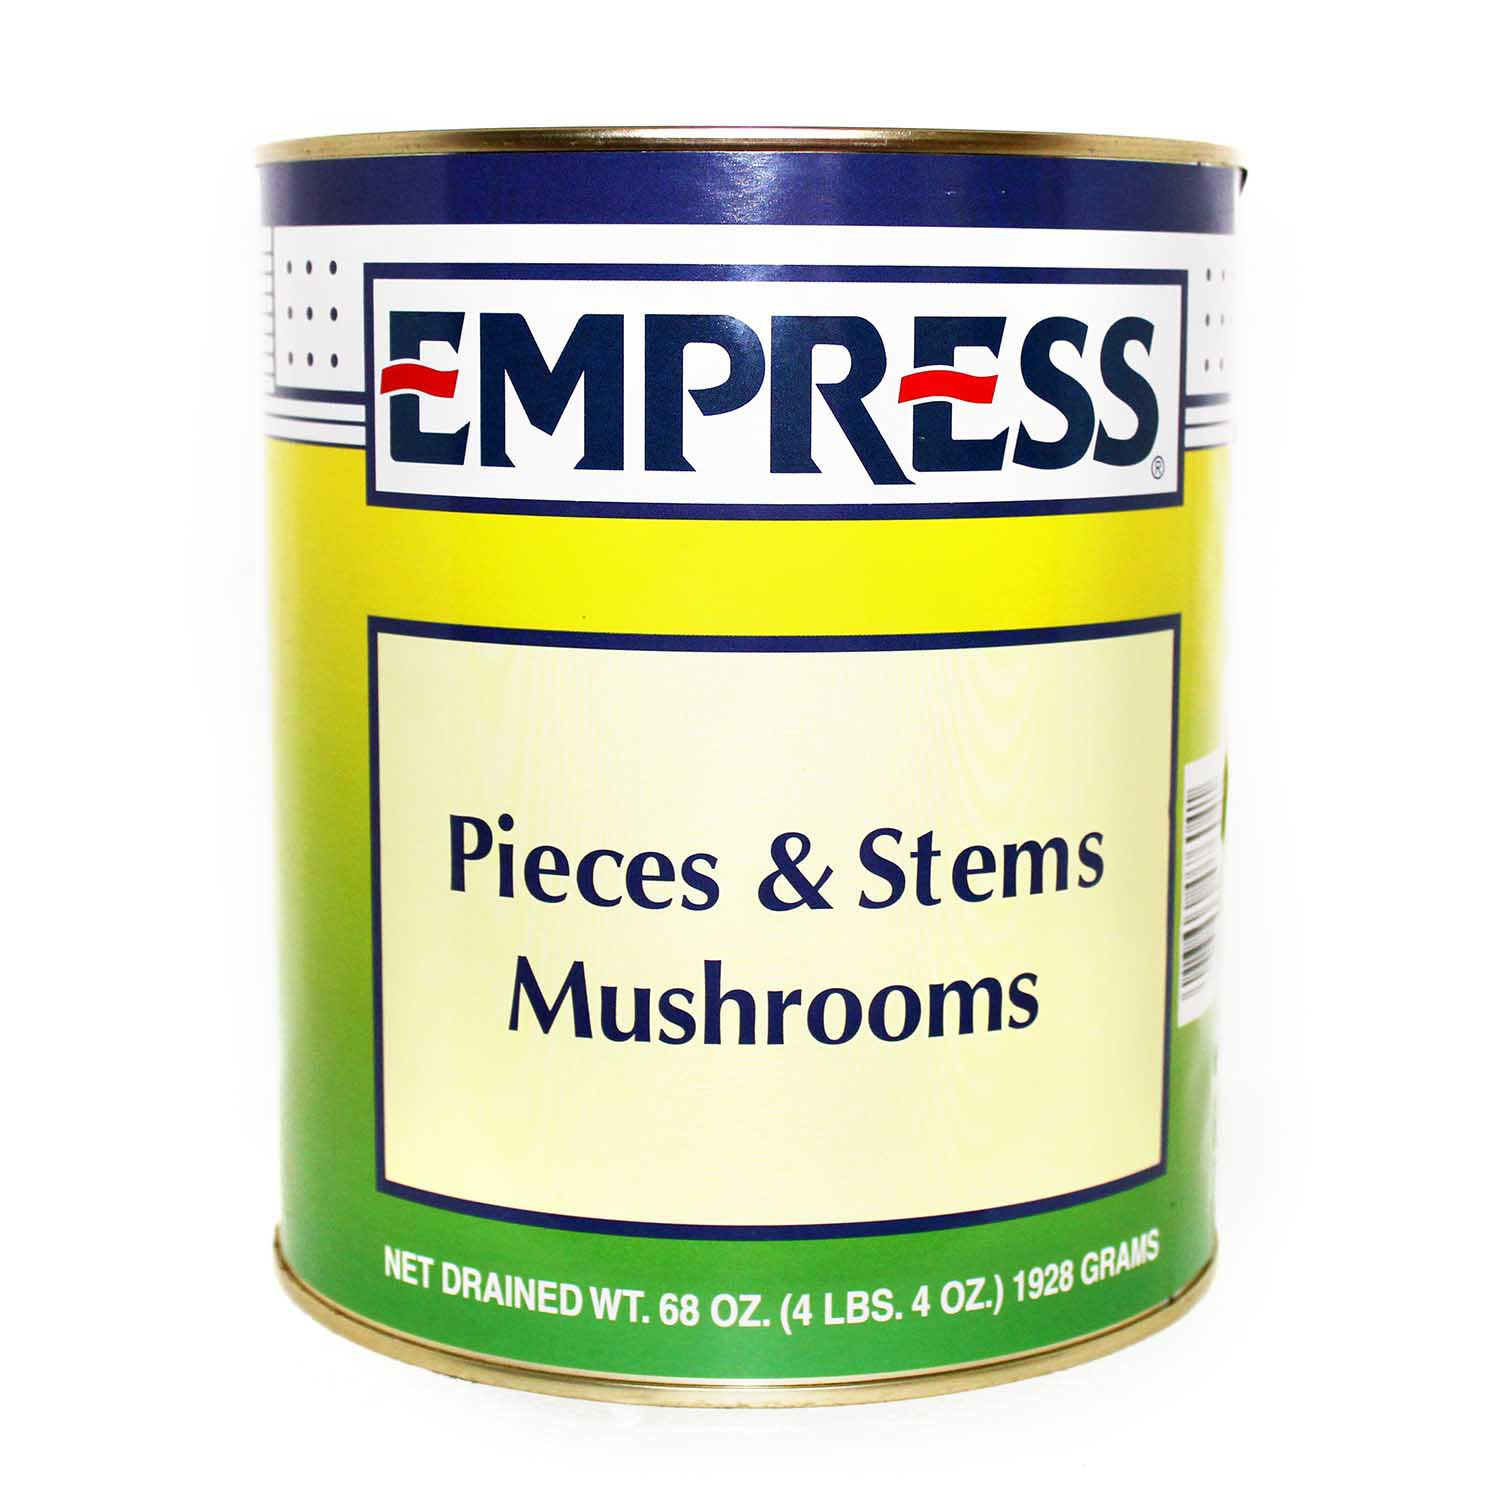 Empress Pieces & Stems Mushrooms (68 oz.) by